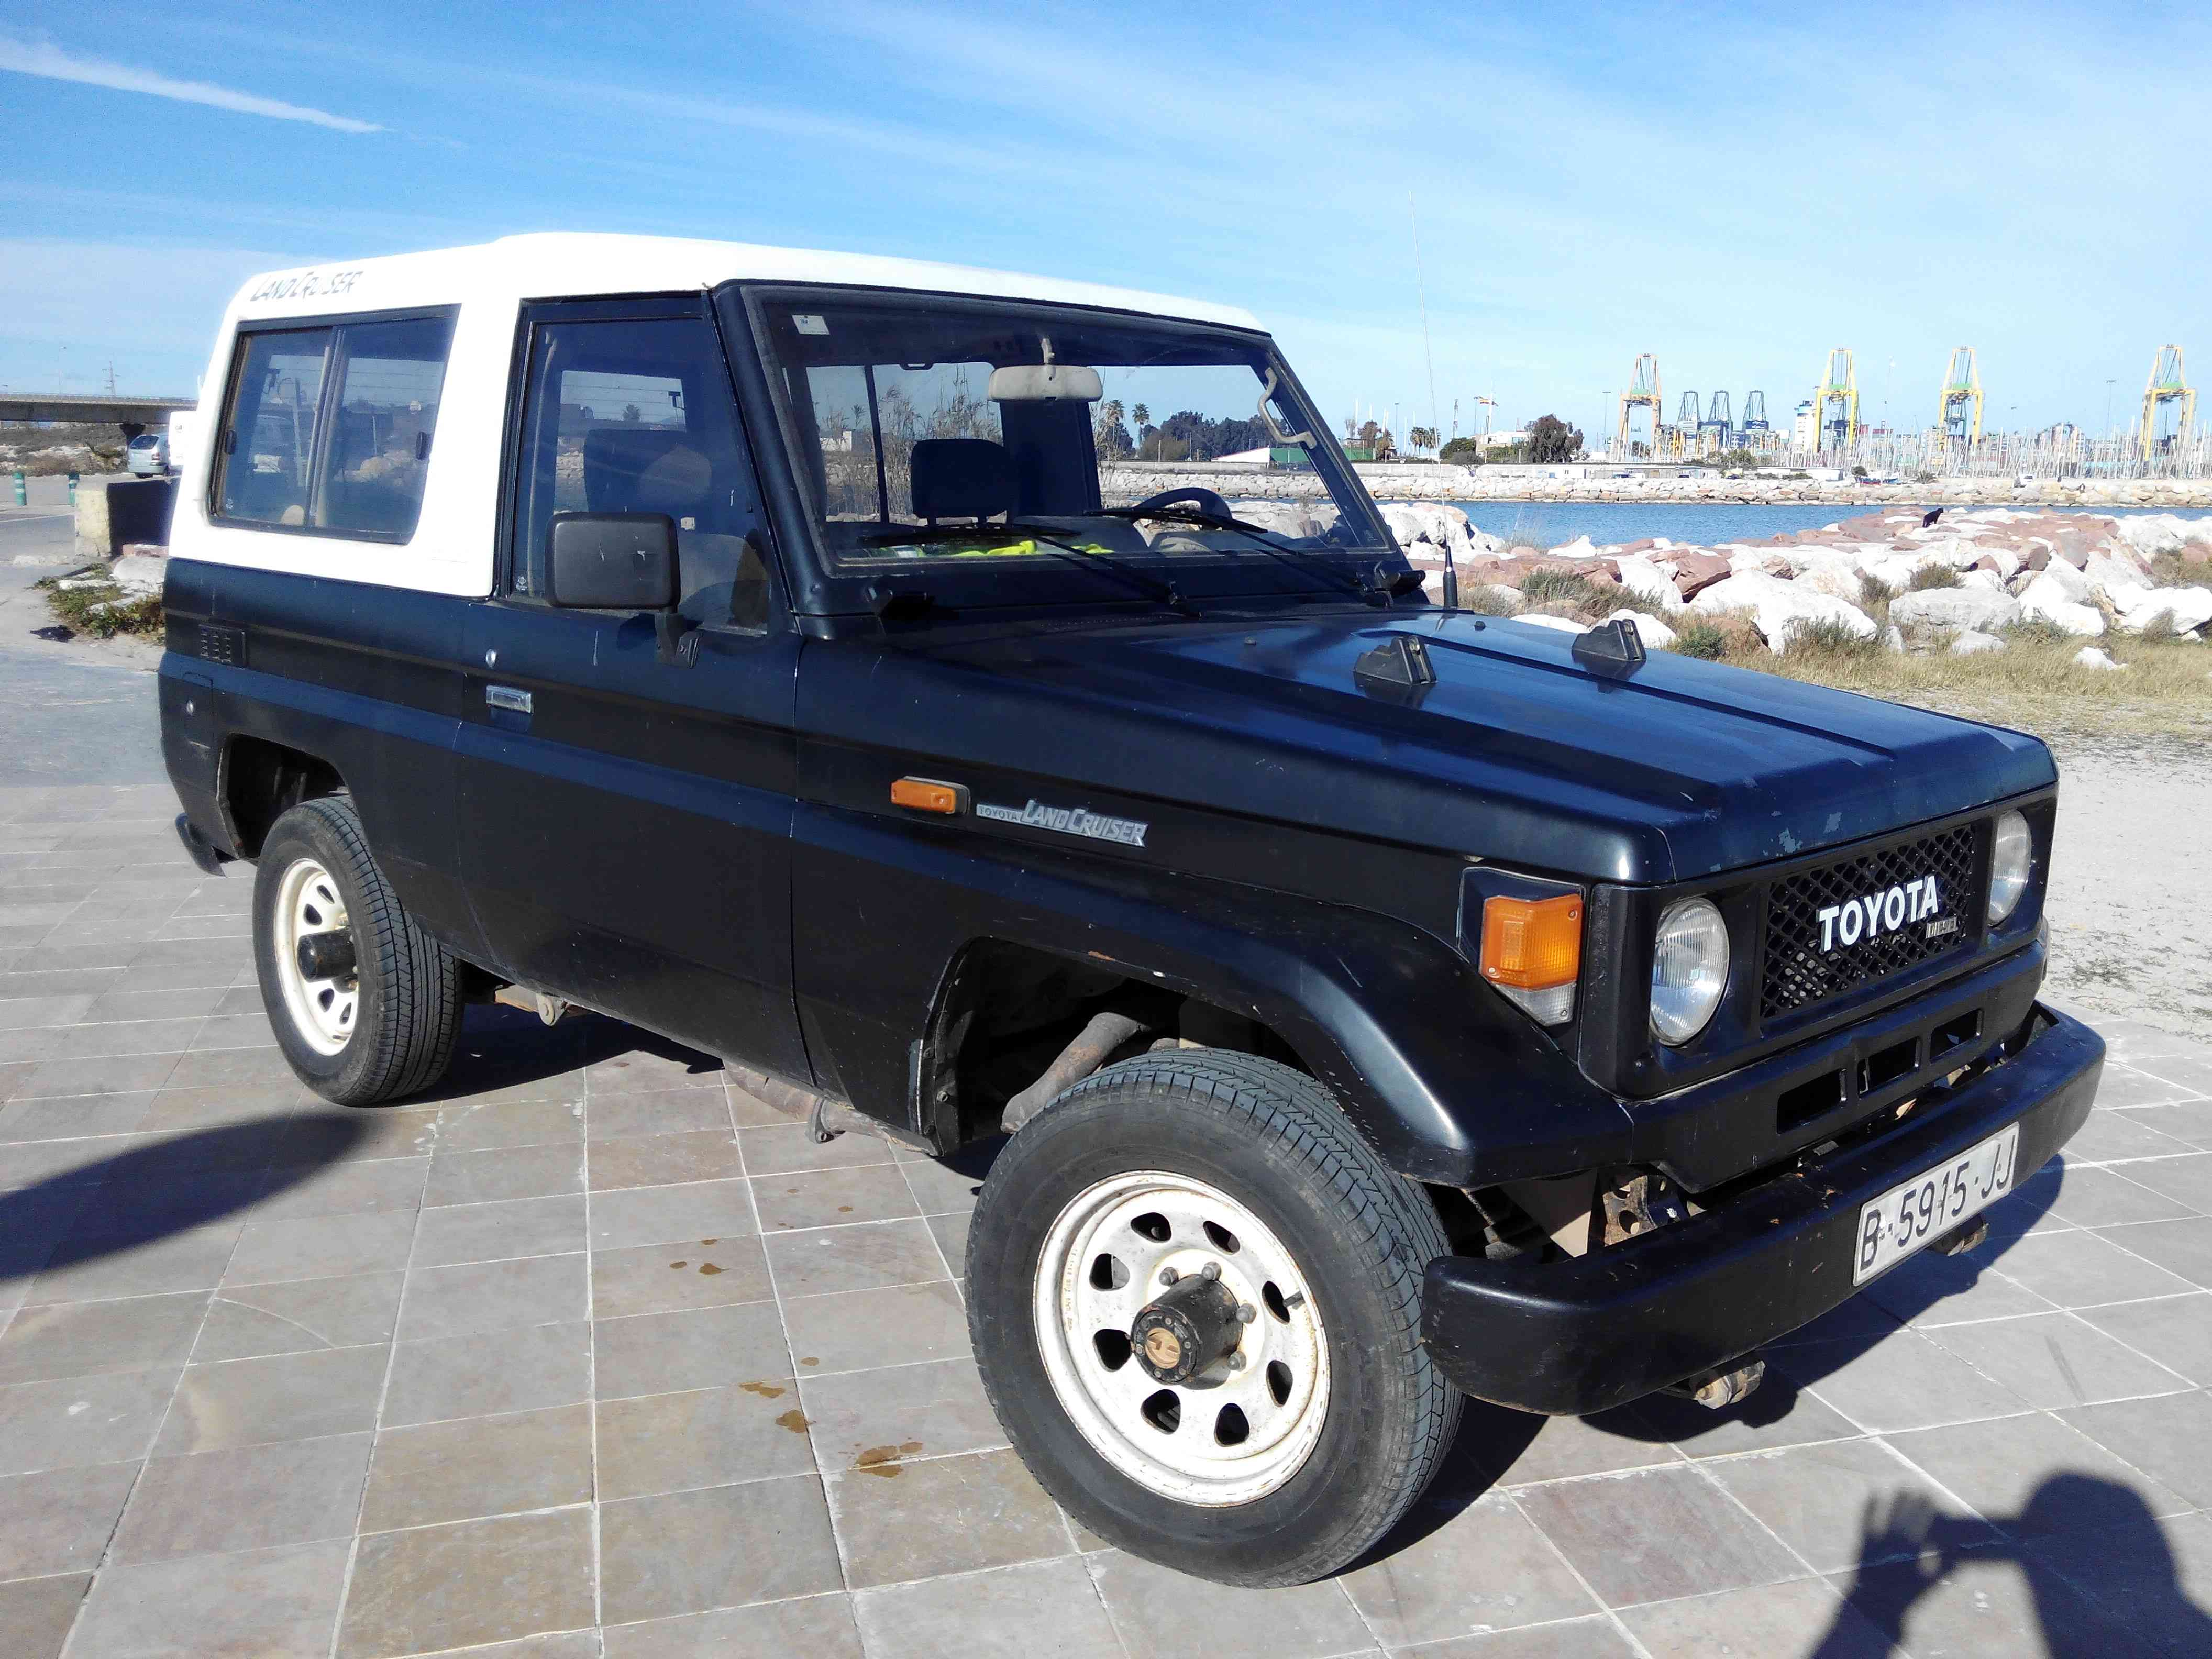 1988 Toyota BJ73 Landcruiser LHD turbo sel with removable top